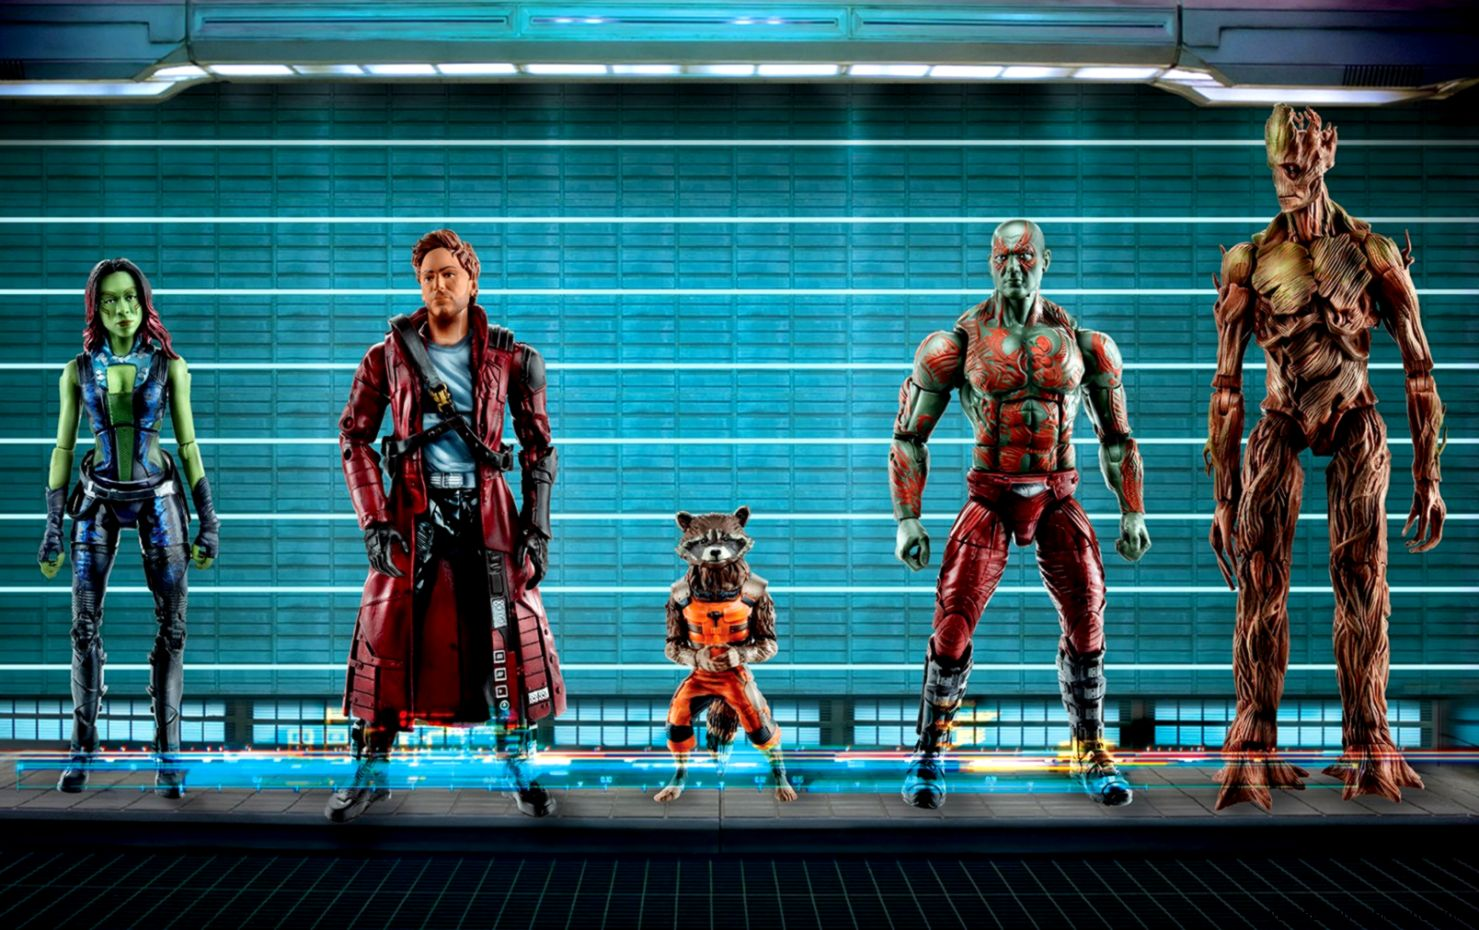 Good Wallpaper Movie Guardians The Galaxy - 27-guardians-of-the-galaxy-wallpapers-movie-12727-wallpaper  Pictures_632793.jpg